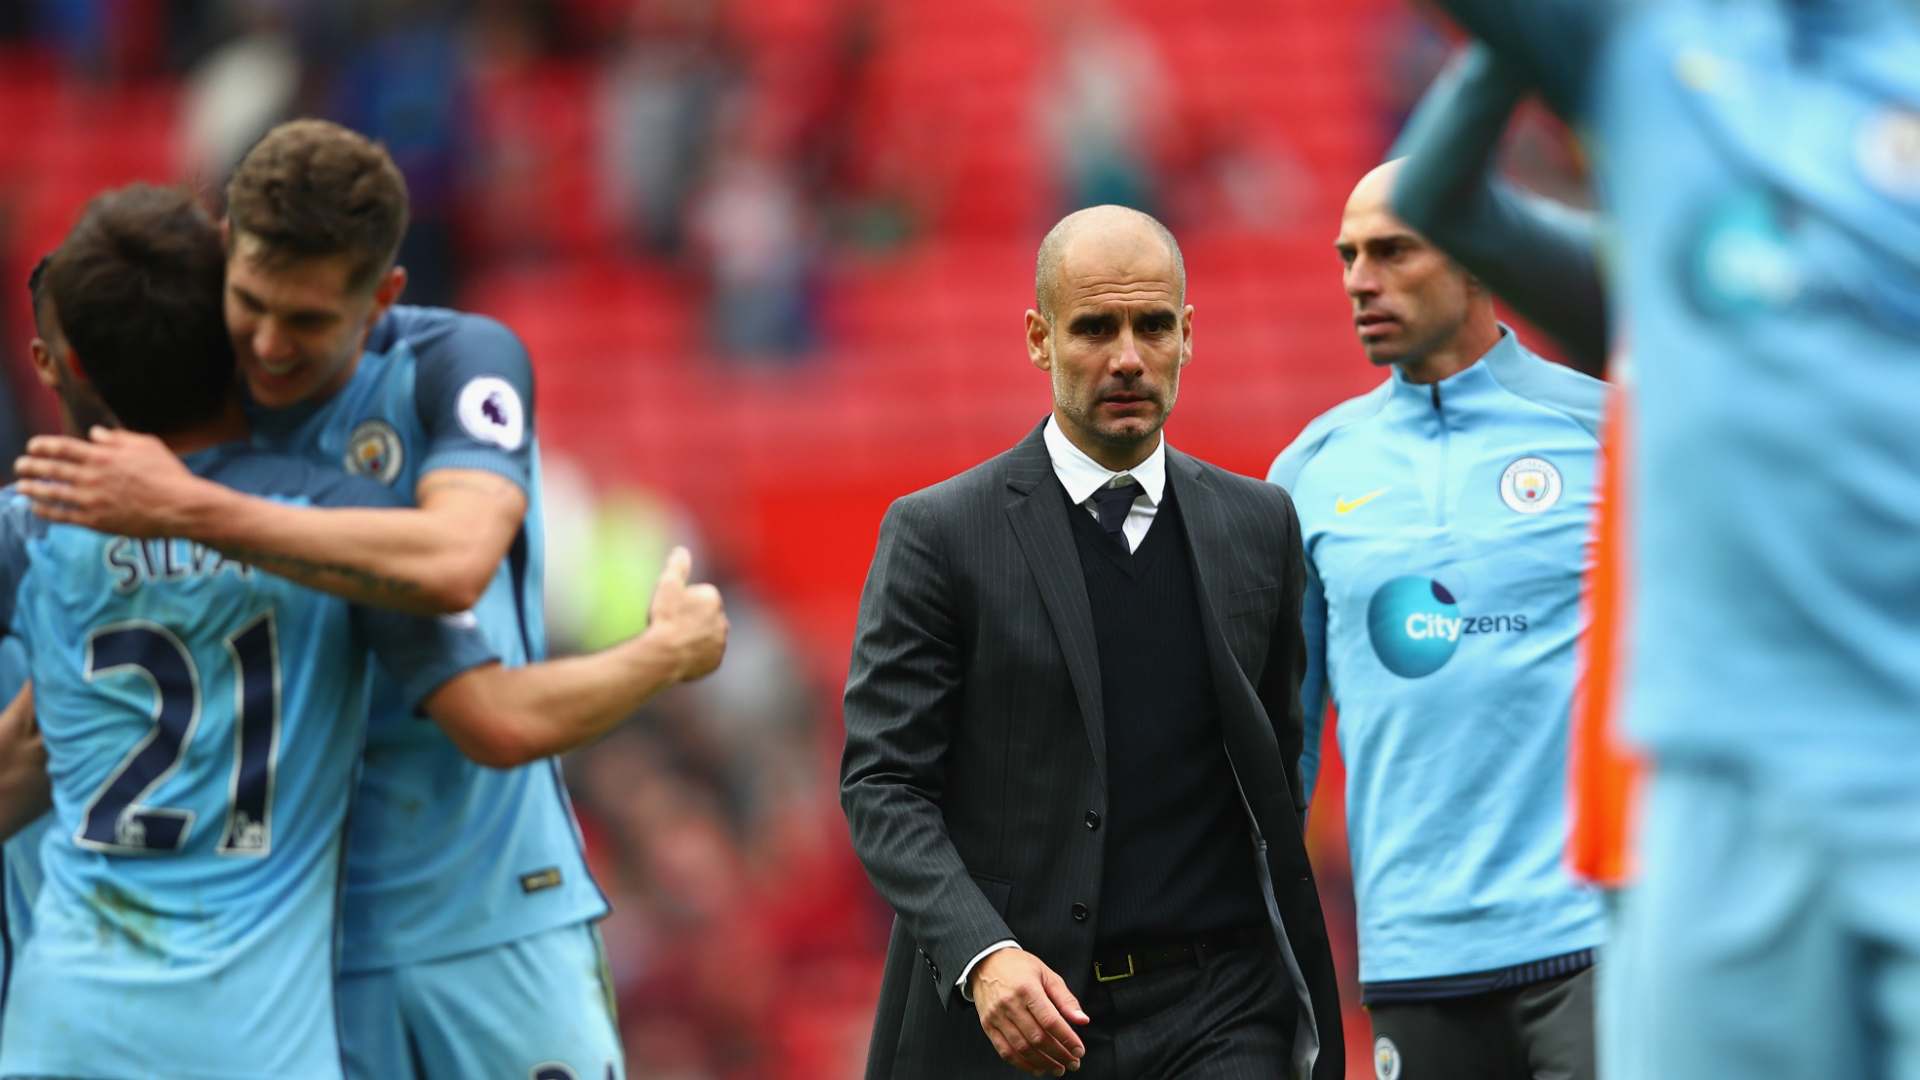 Manchester City's great start not enough for perfectionist Guardiola